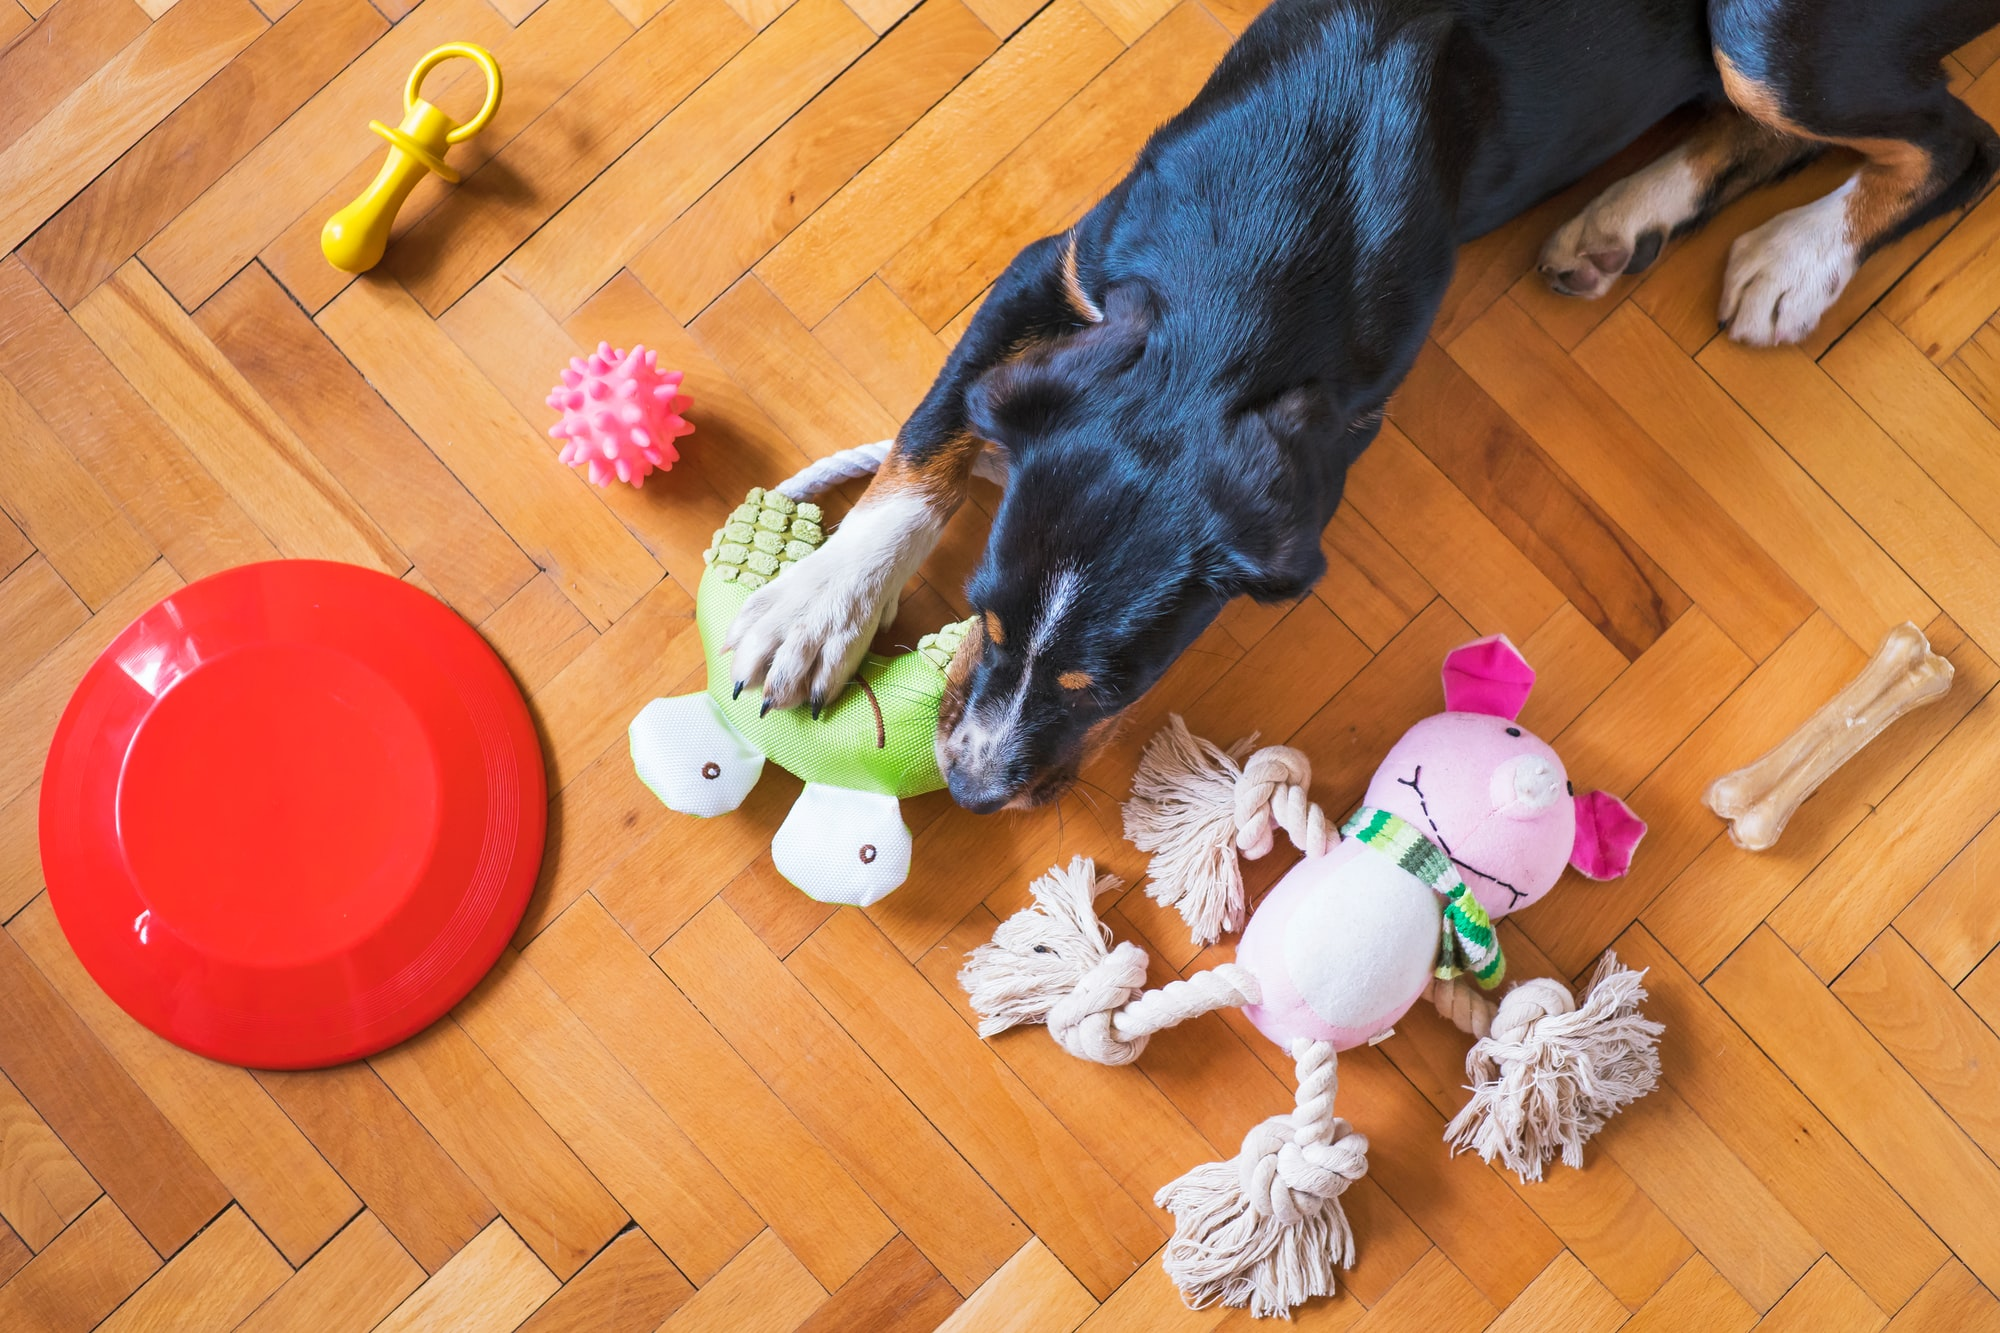 Which Type Of Toys Do Dogs like?